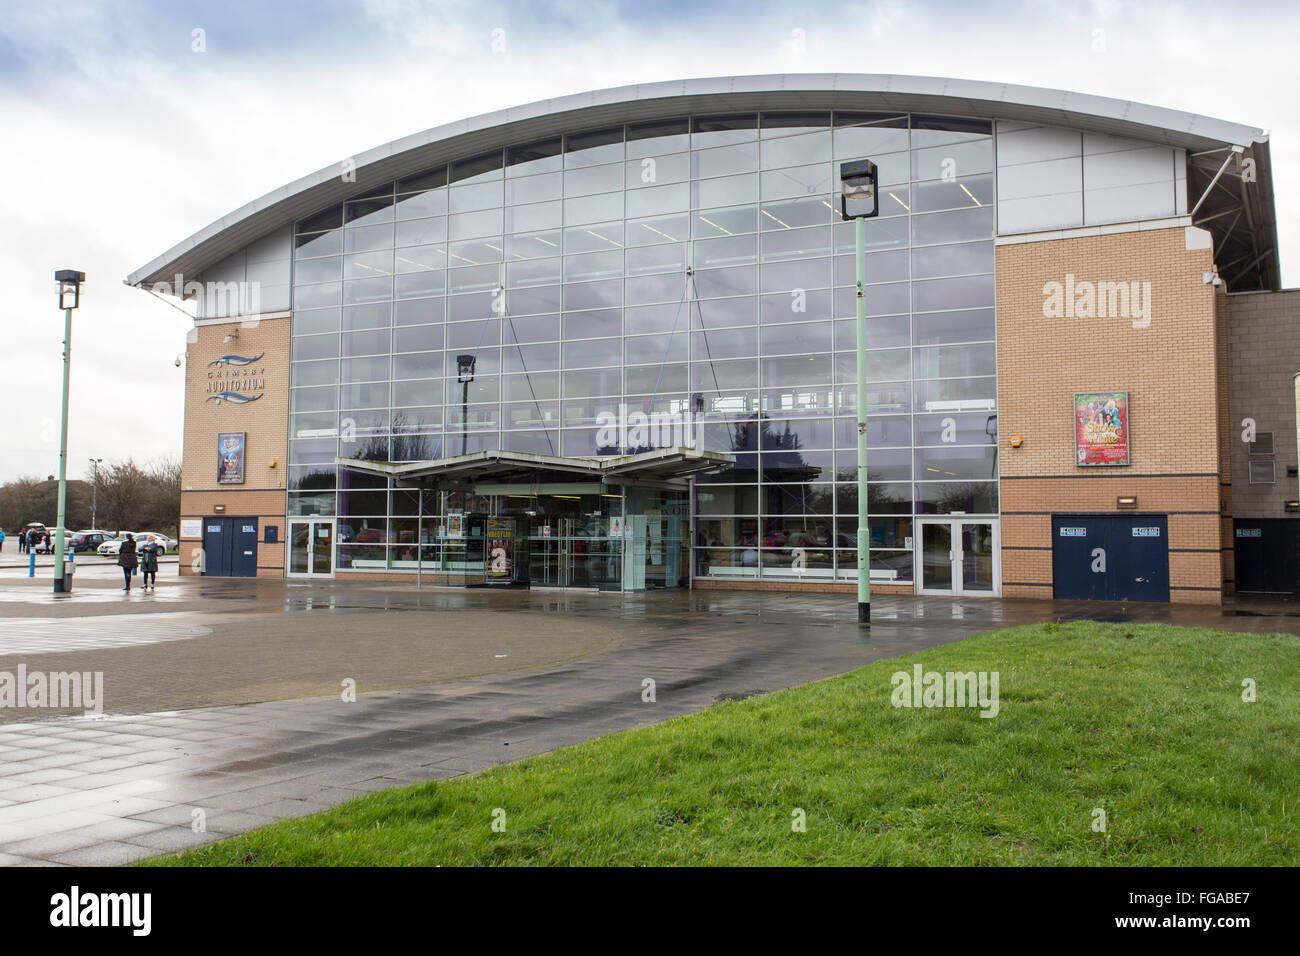 Grimsby Auditorium venue for concerts and events - Stock Image